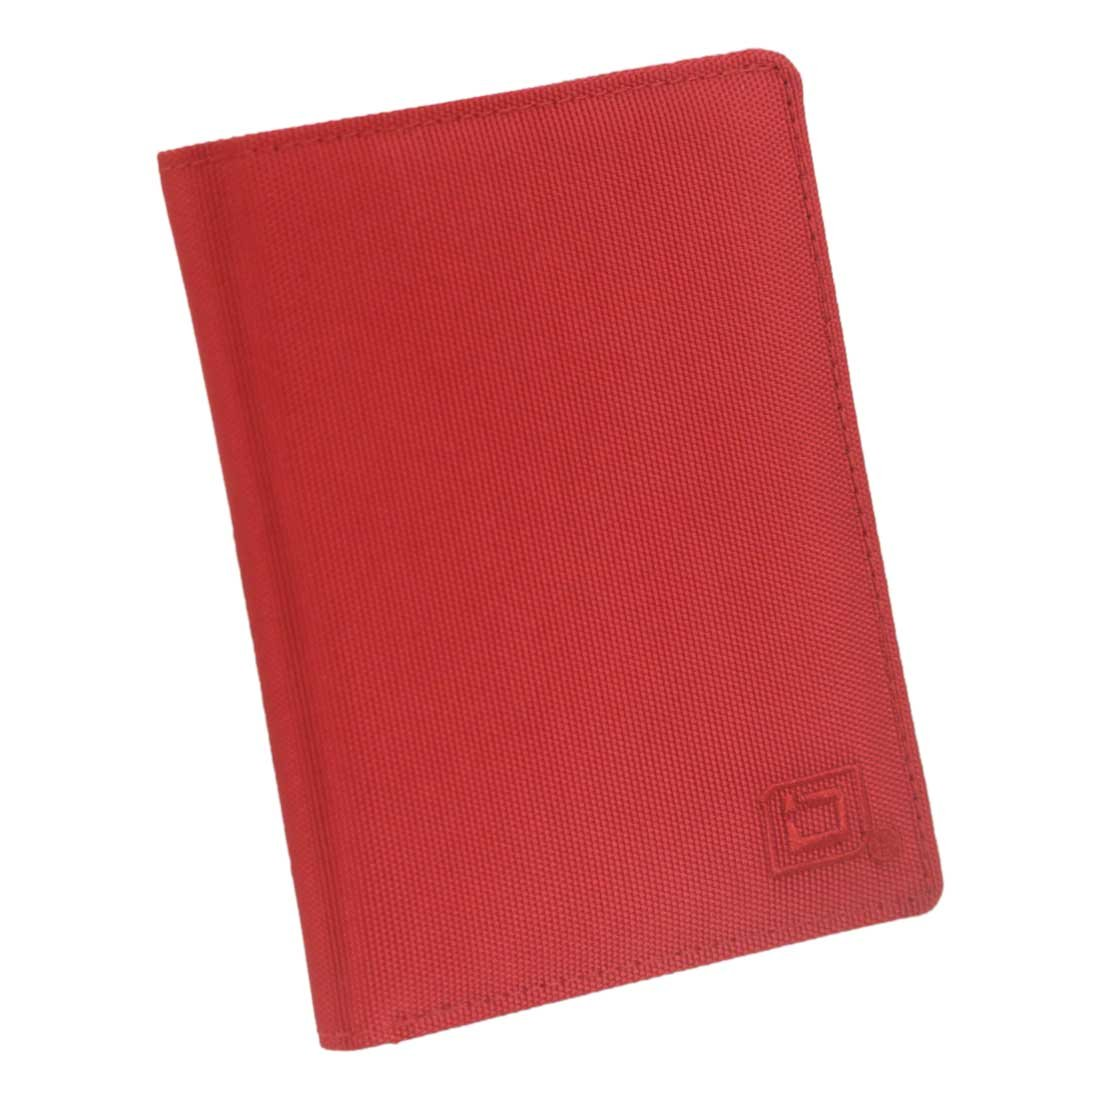 25a63c5a70ac RFID Wallet Nylon Passport Cover - Protective Travel Covers - RFID Blocking  Products for Men and Women (Red)